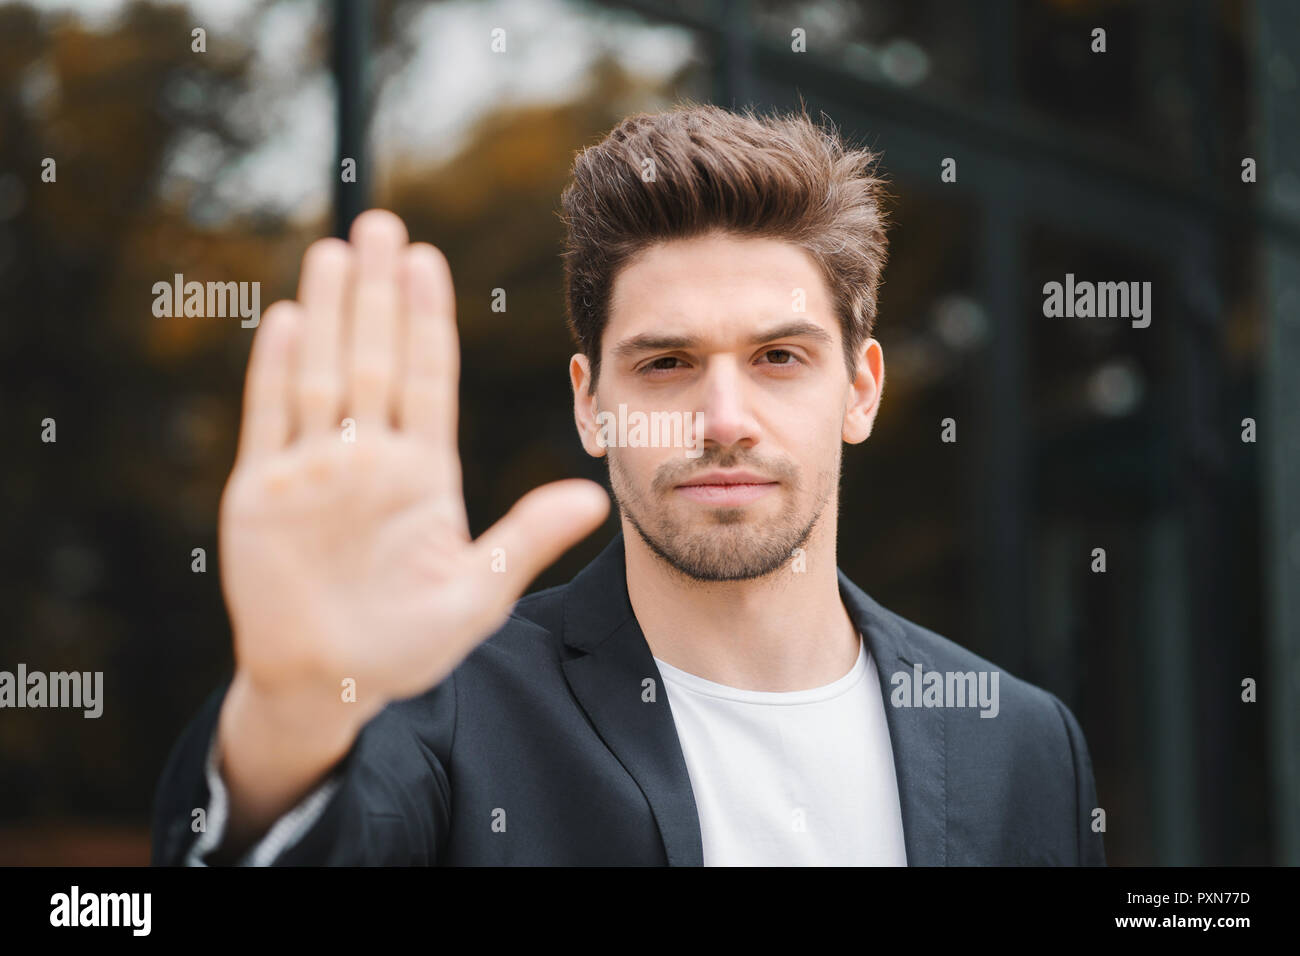 Portrait of young businessman disapproval gesture with hand: denial sign, no sign, negative gesture closes the camera with hand, professional male manager wearing suit jacket. - Stock Image